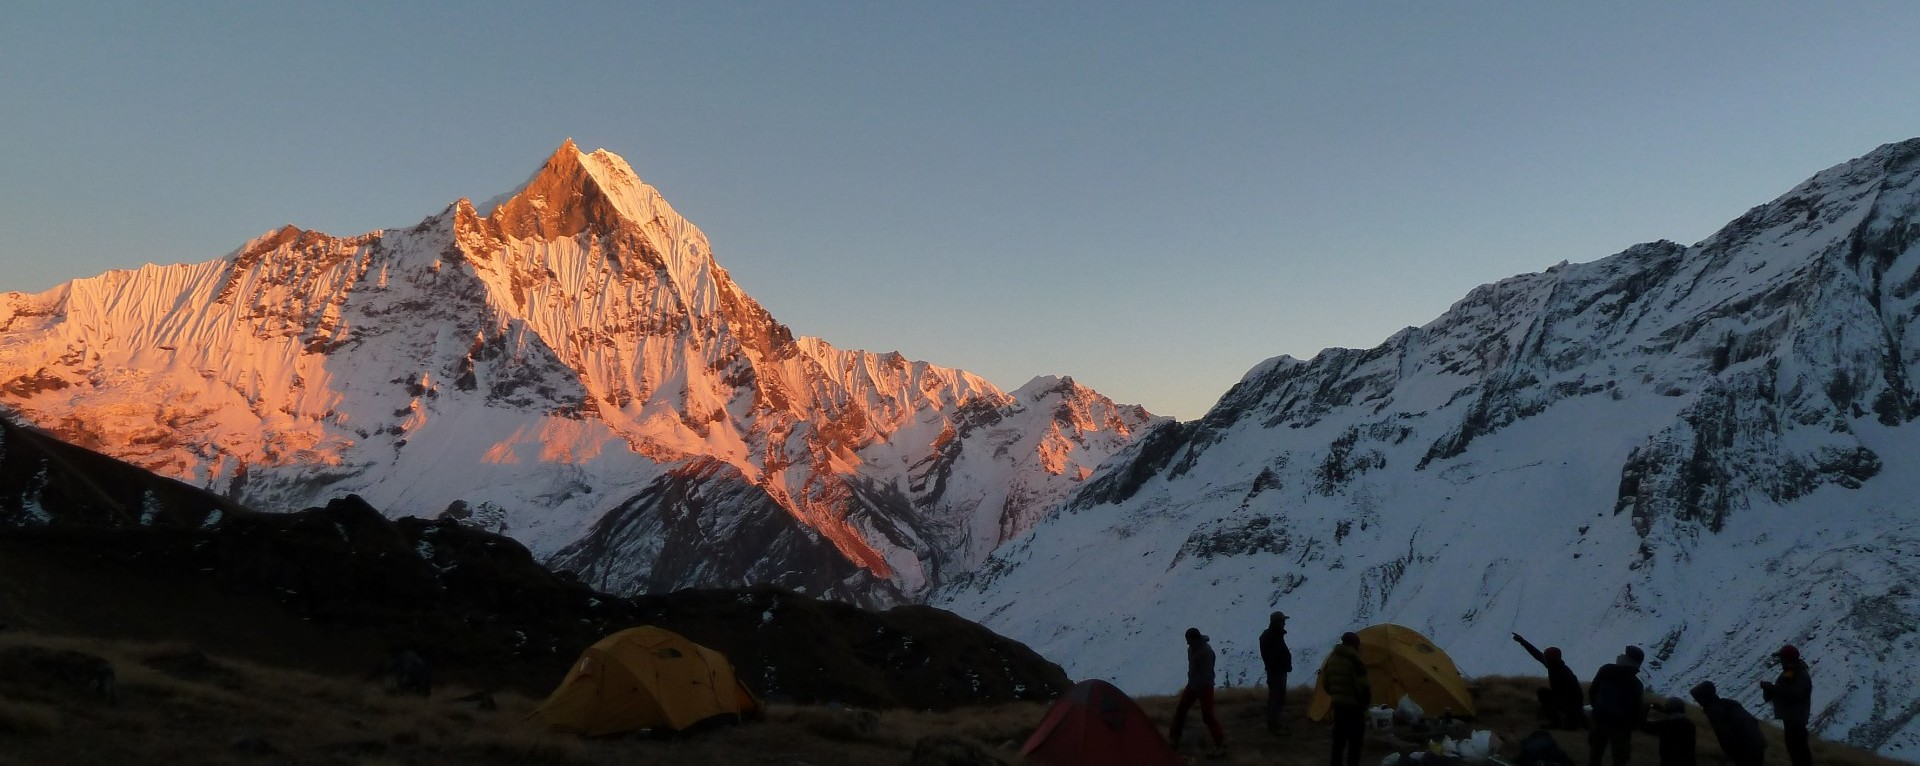 The Sunset view over Mt. Machhapuchhre seen from Tent Peak high camp